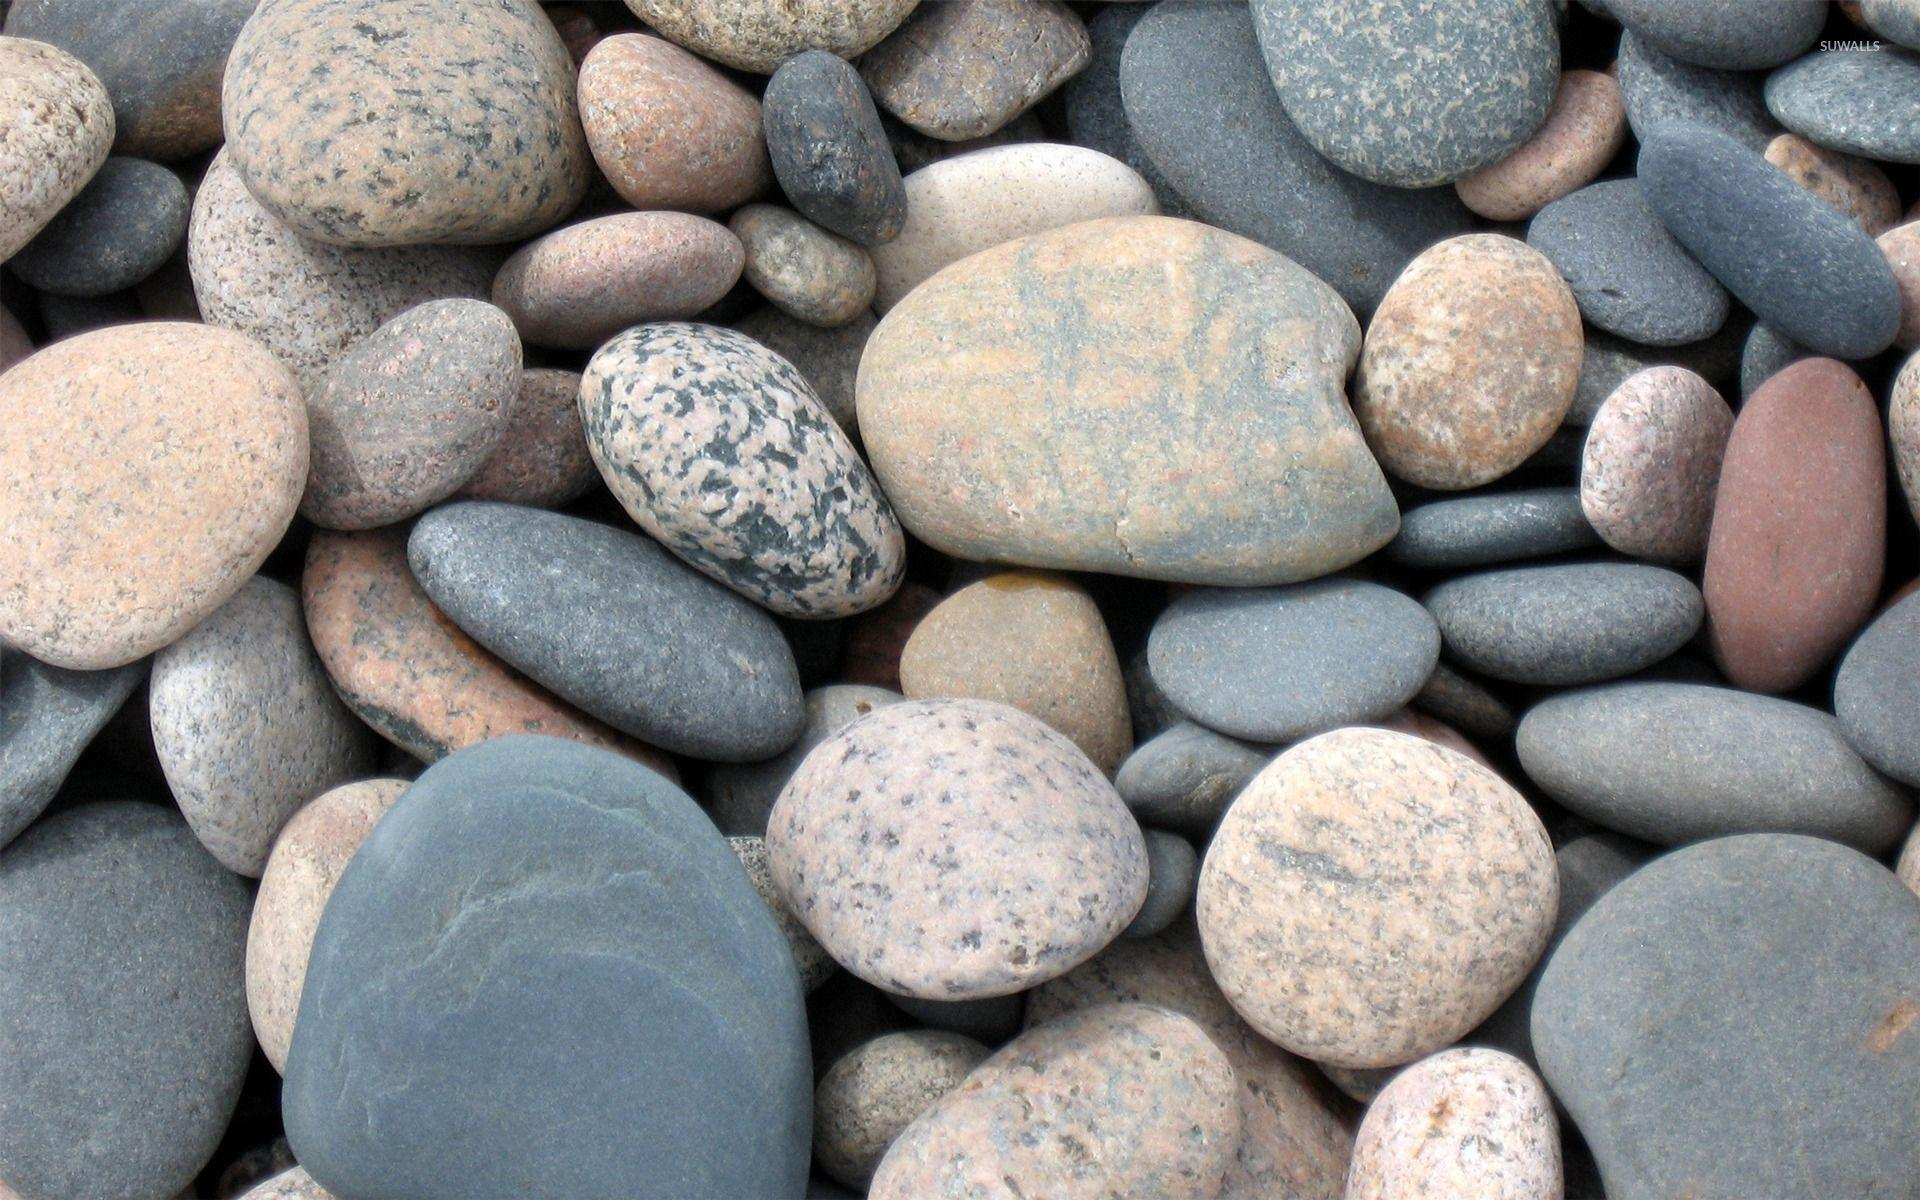 Pebbles wallpaper - Photography wallpapers - #31940